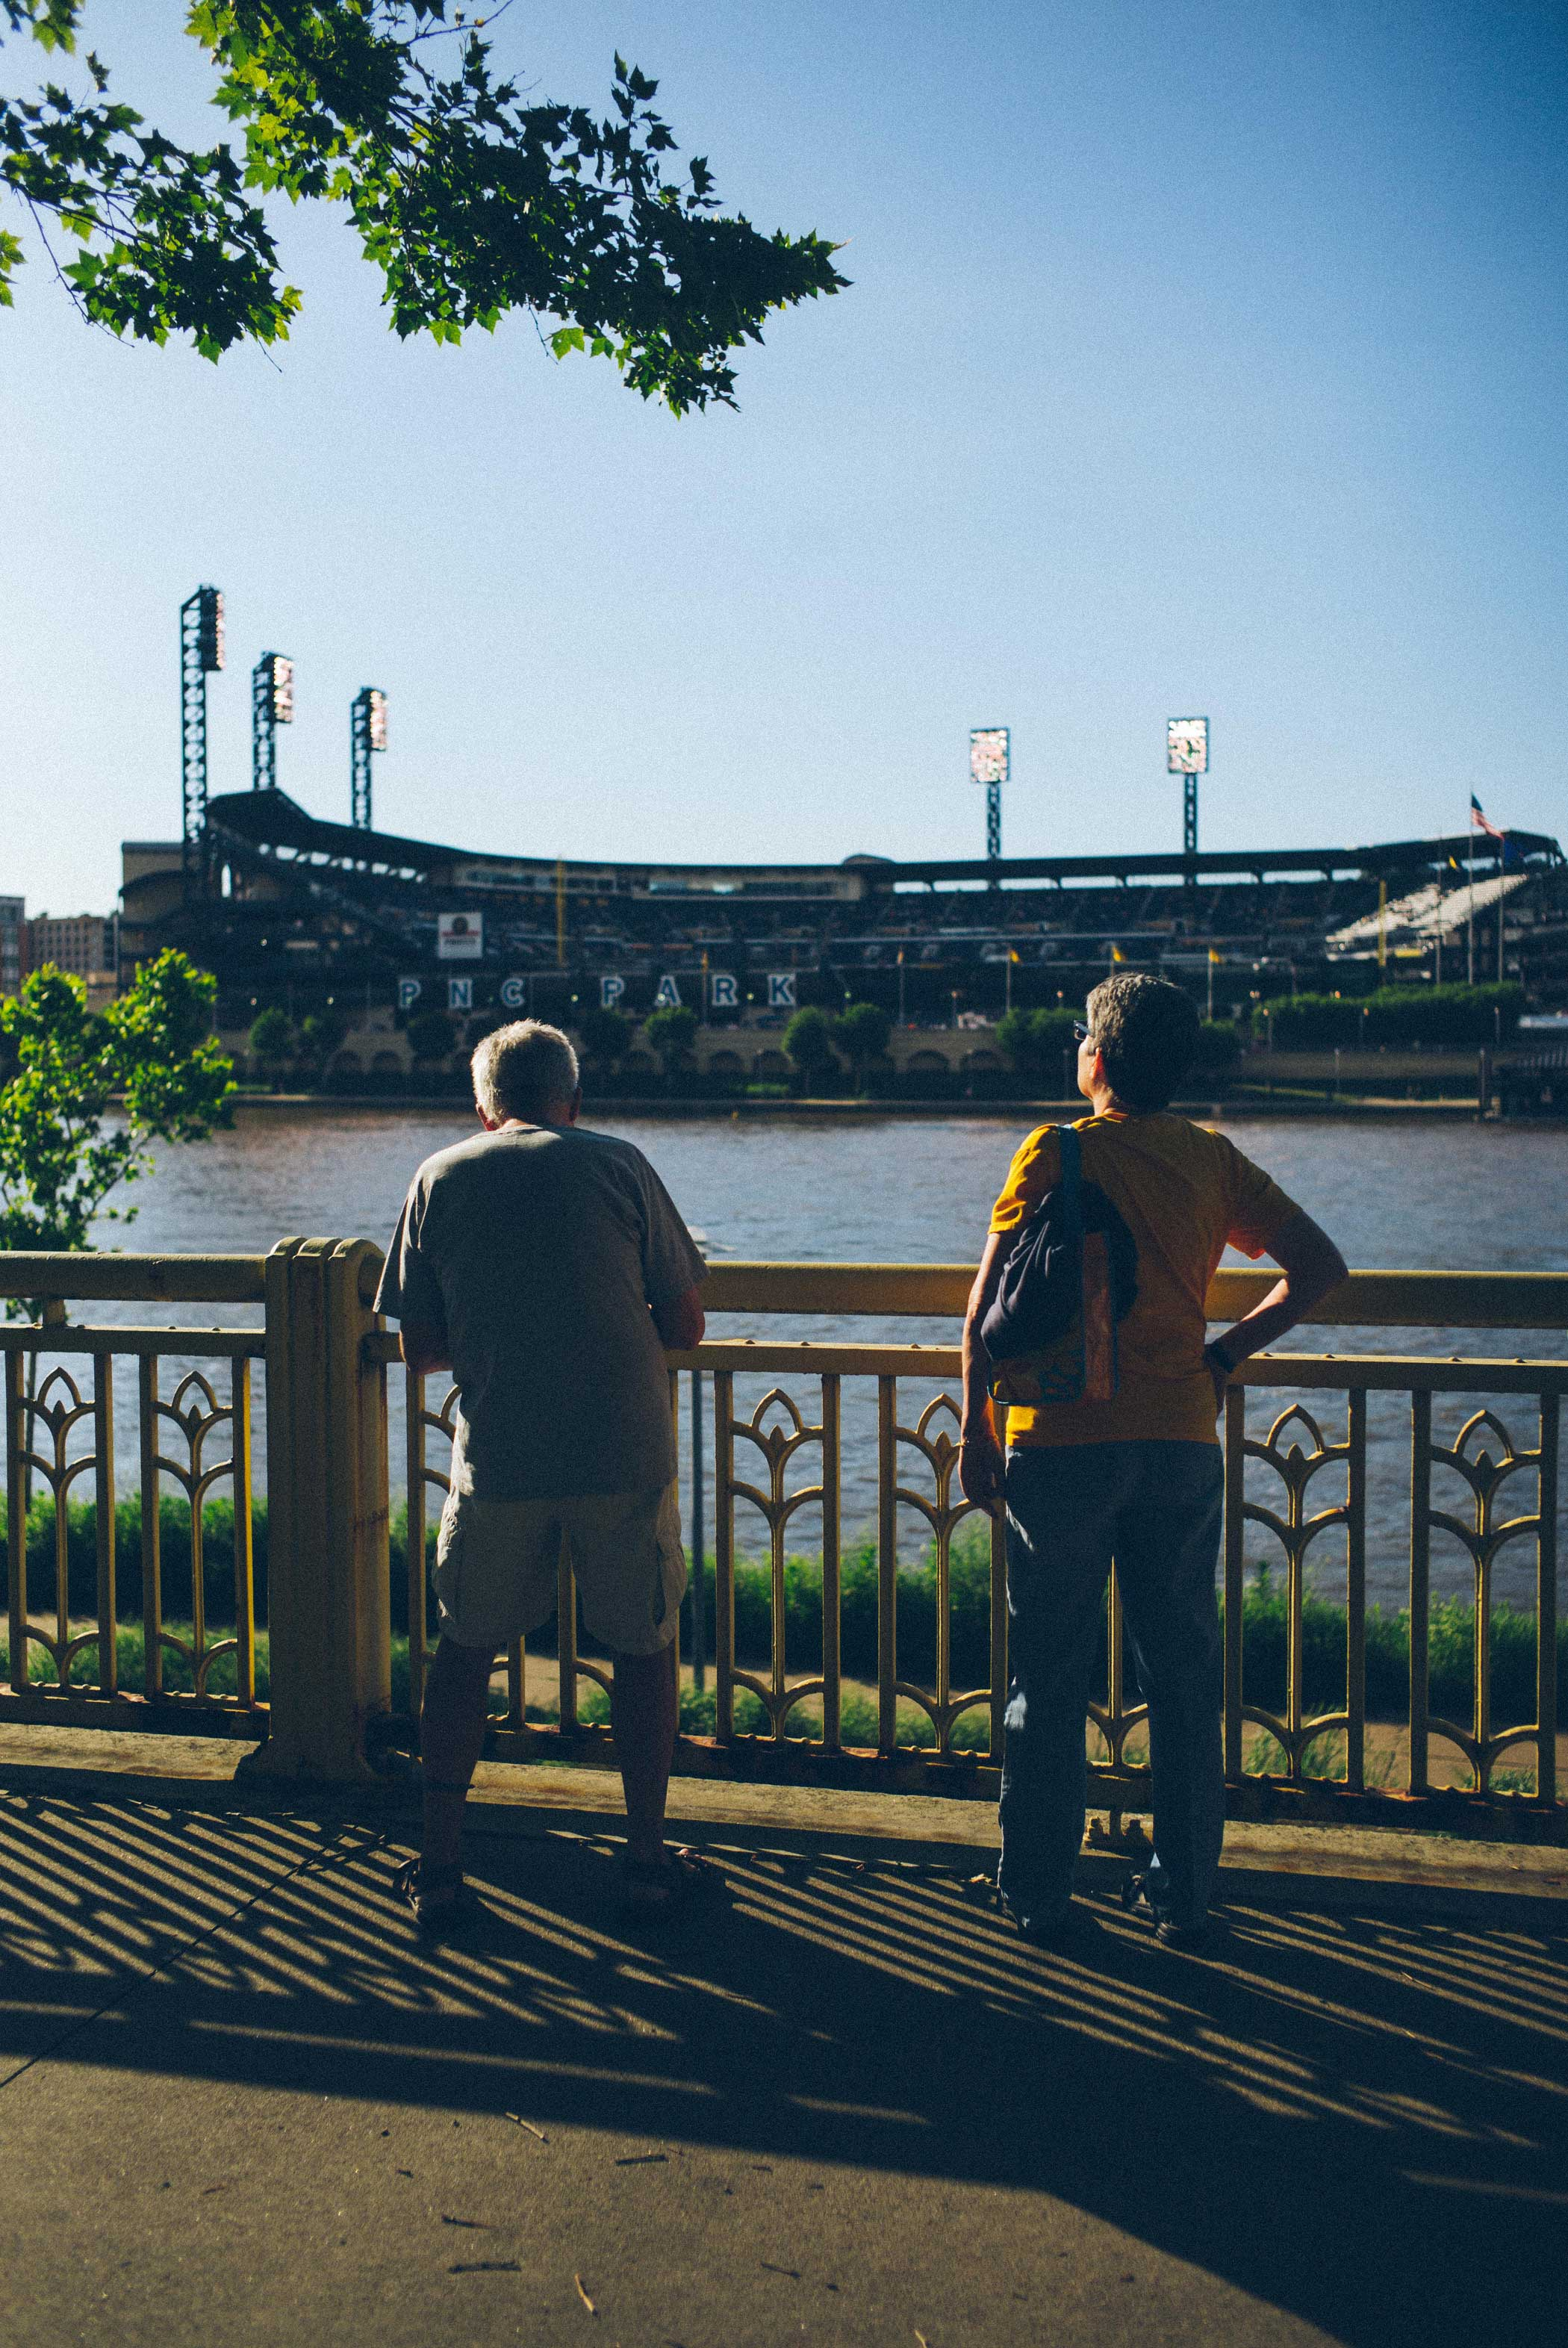 A view of PNC Park on June 24, 2015.